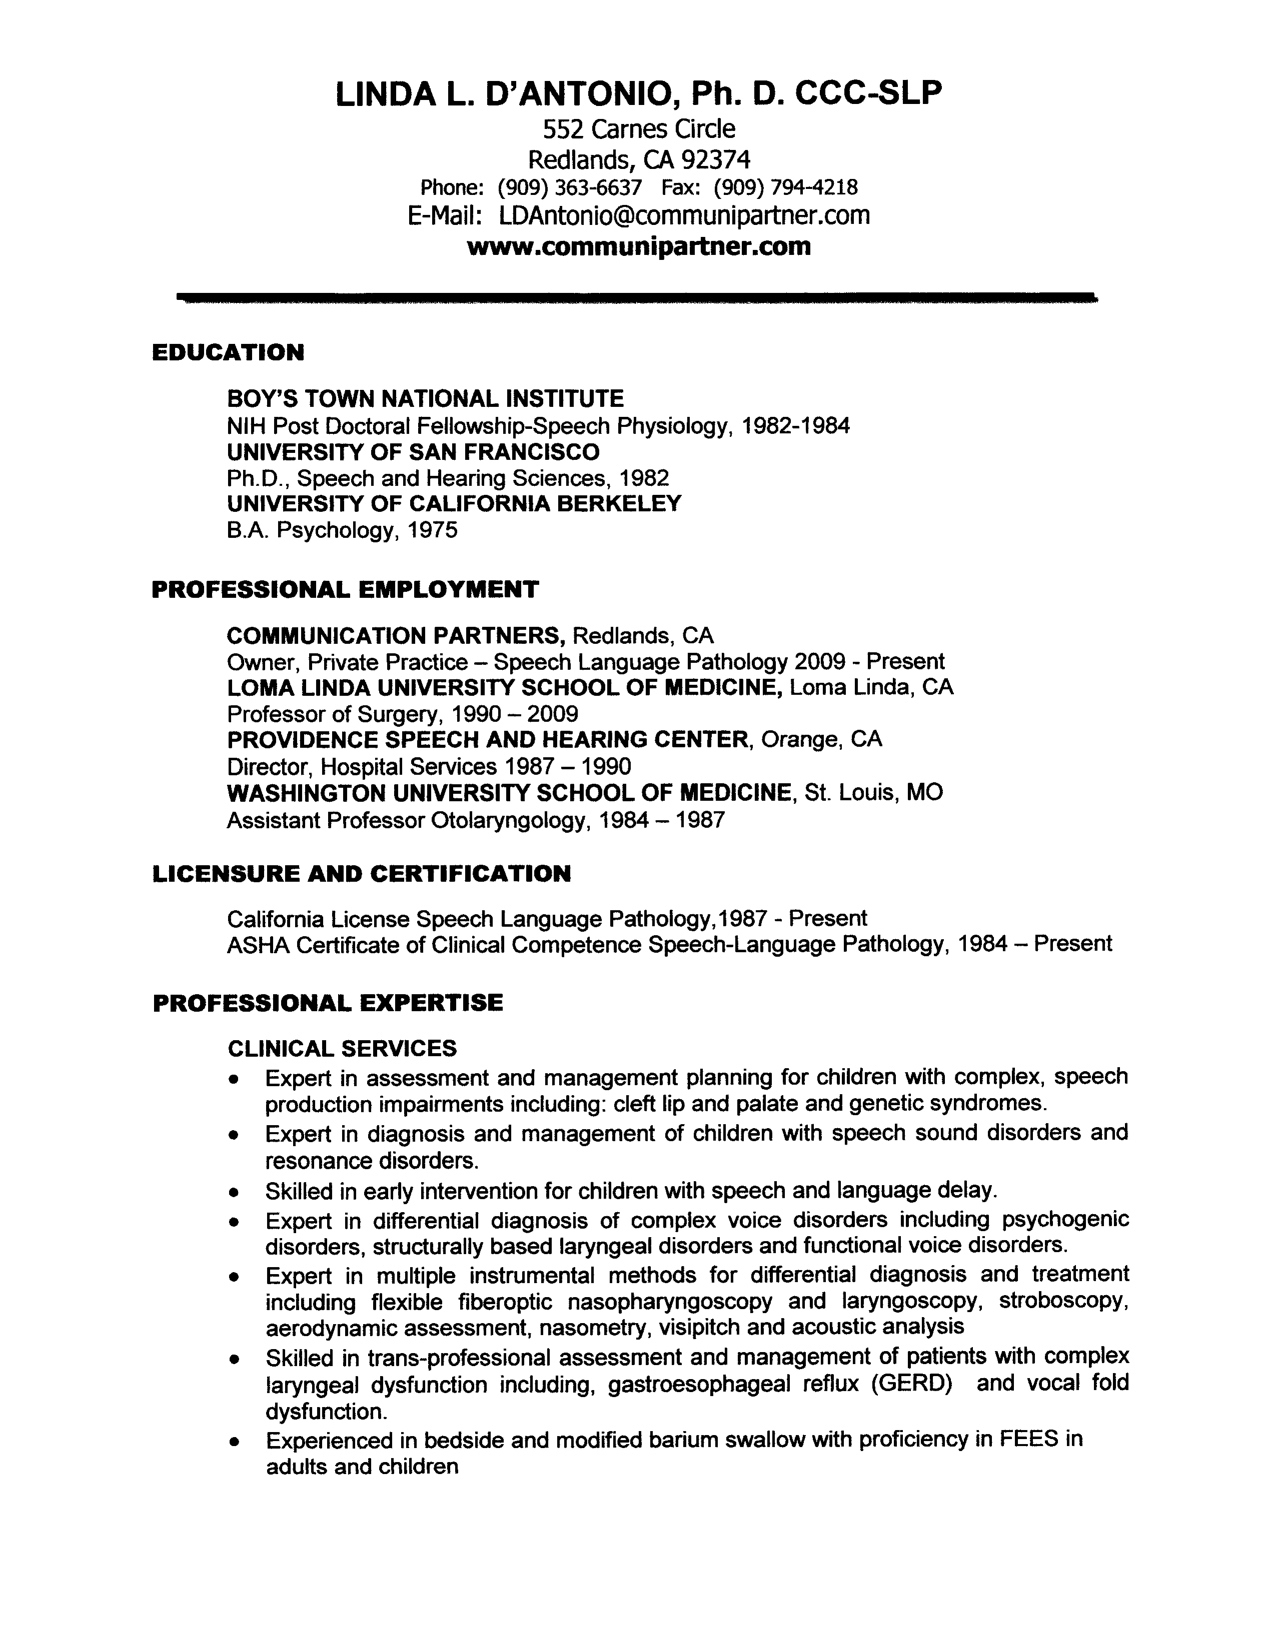 Cover Letter For Speech Language Pathologist Assistant Resume Speech Language Pathologists Speech And Language Speech Language Pathology